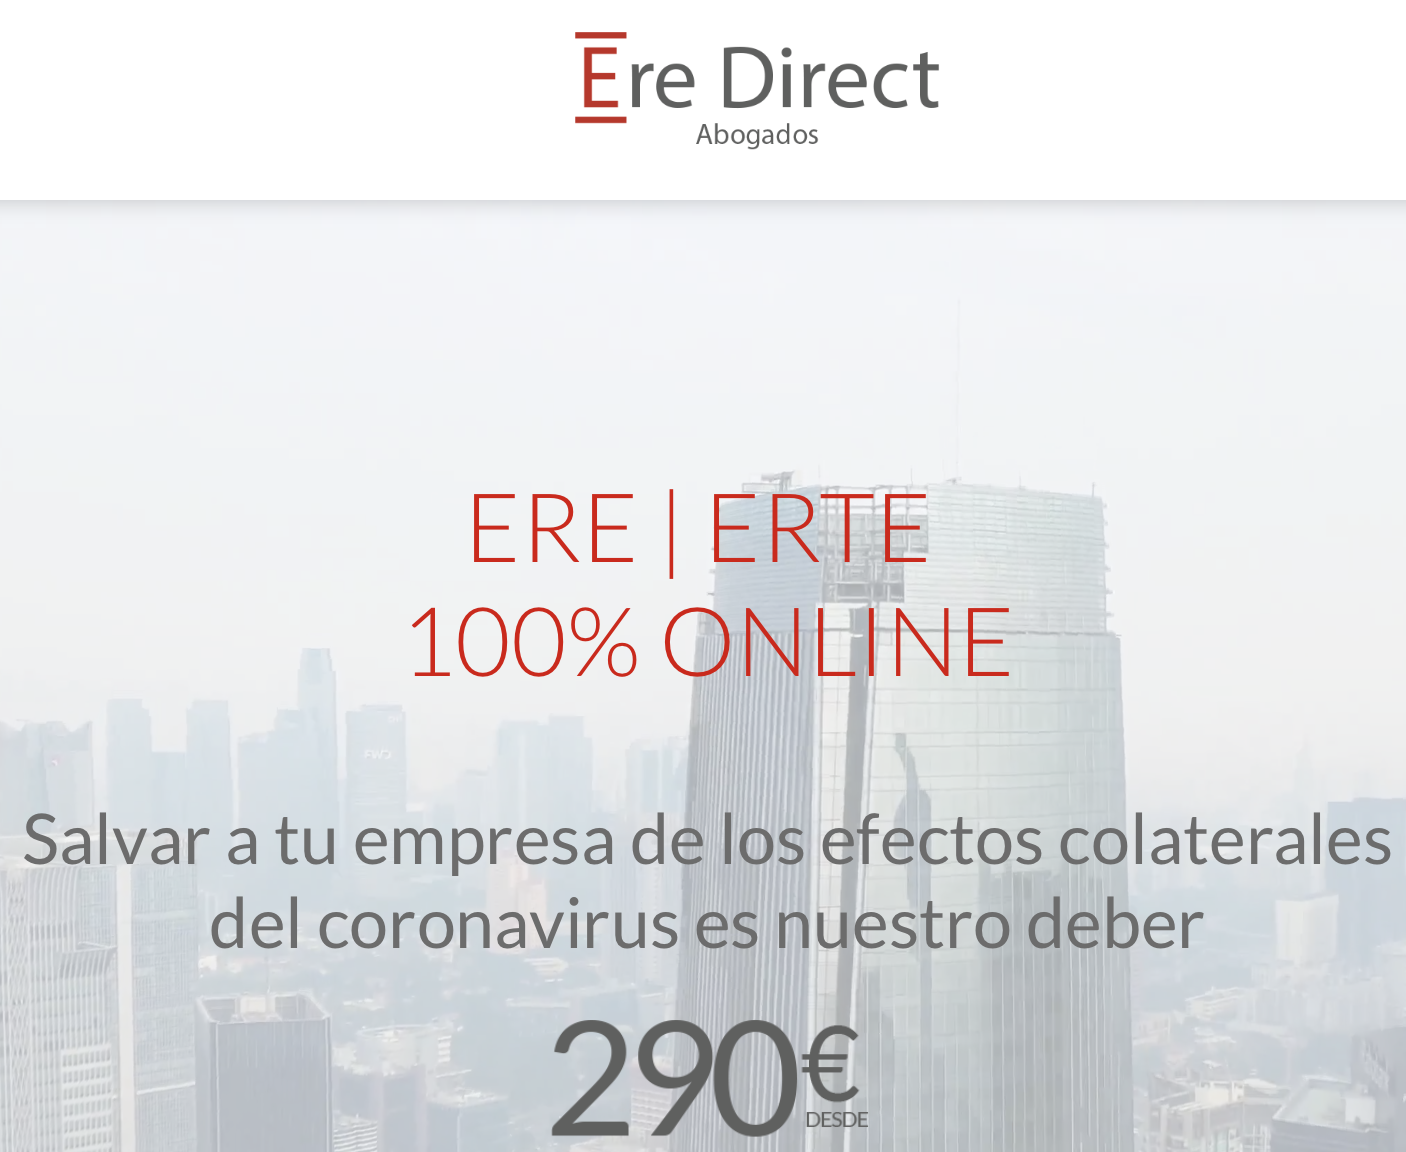 eredirect2020